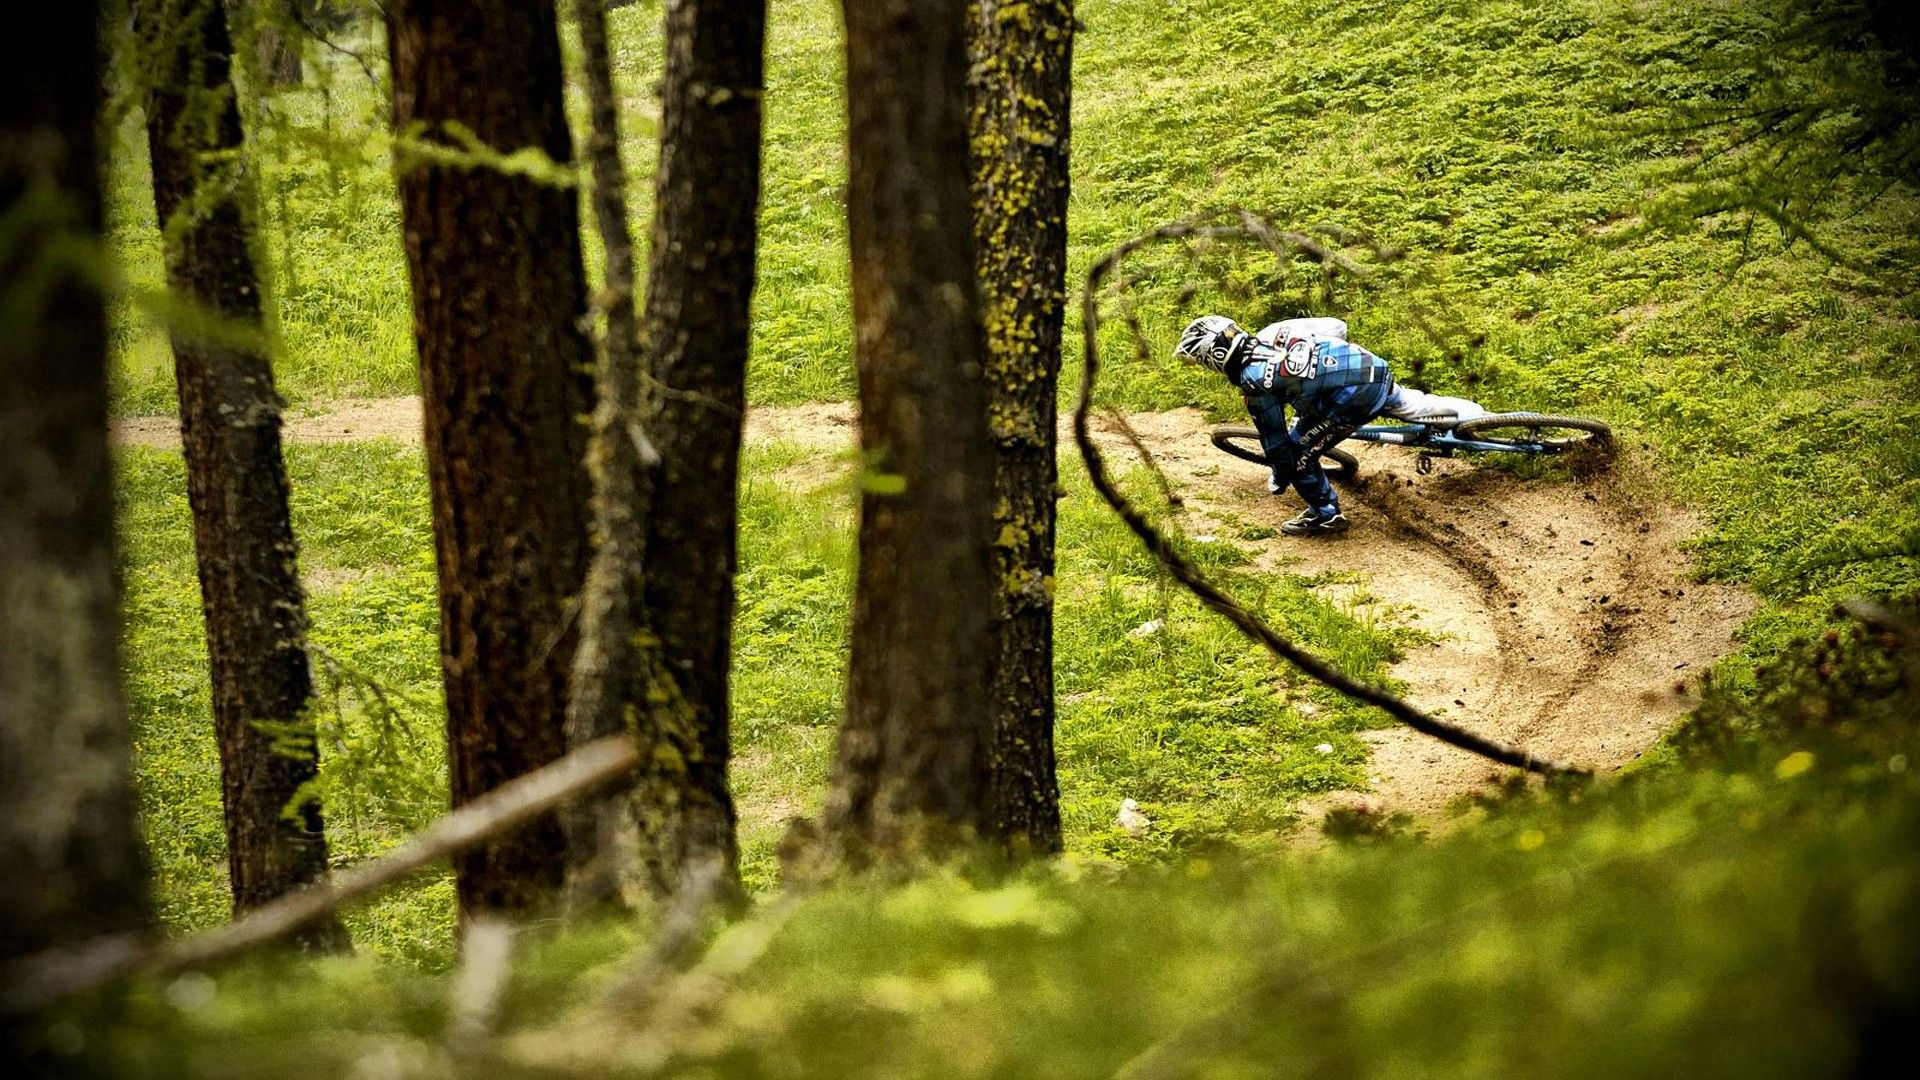 Pinkbike Photo Of The Year Wallpaper Downhill Mountain Biking